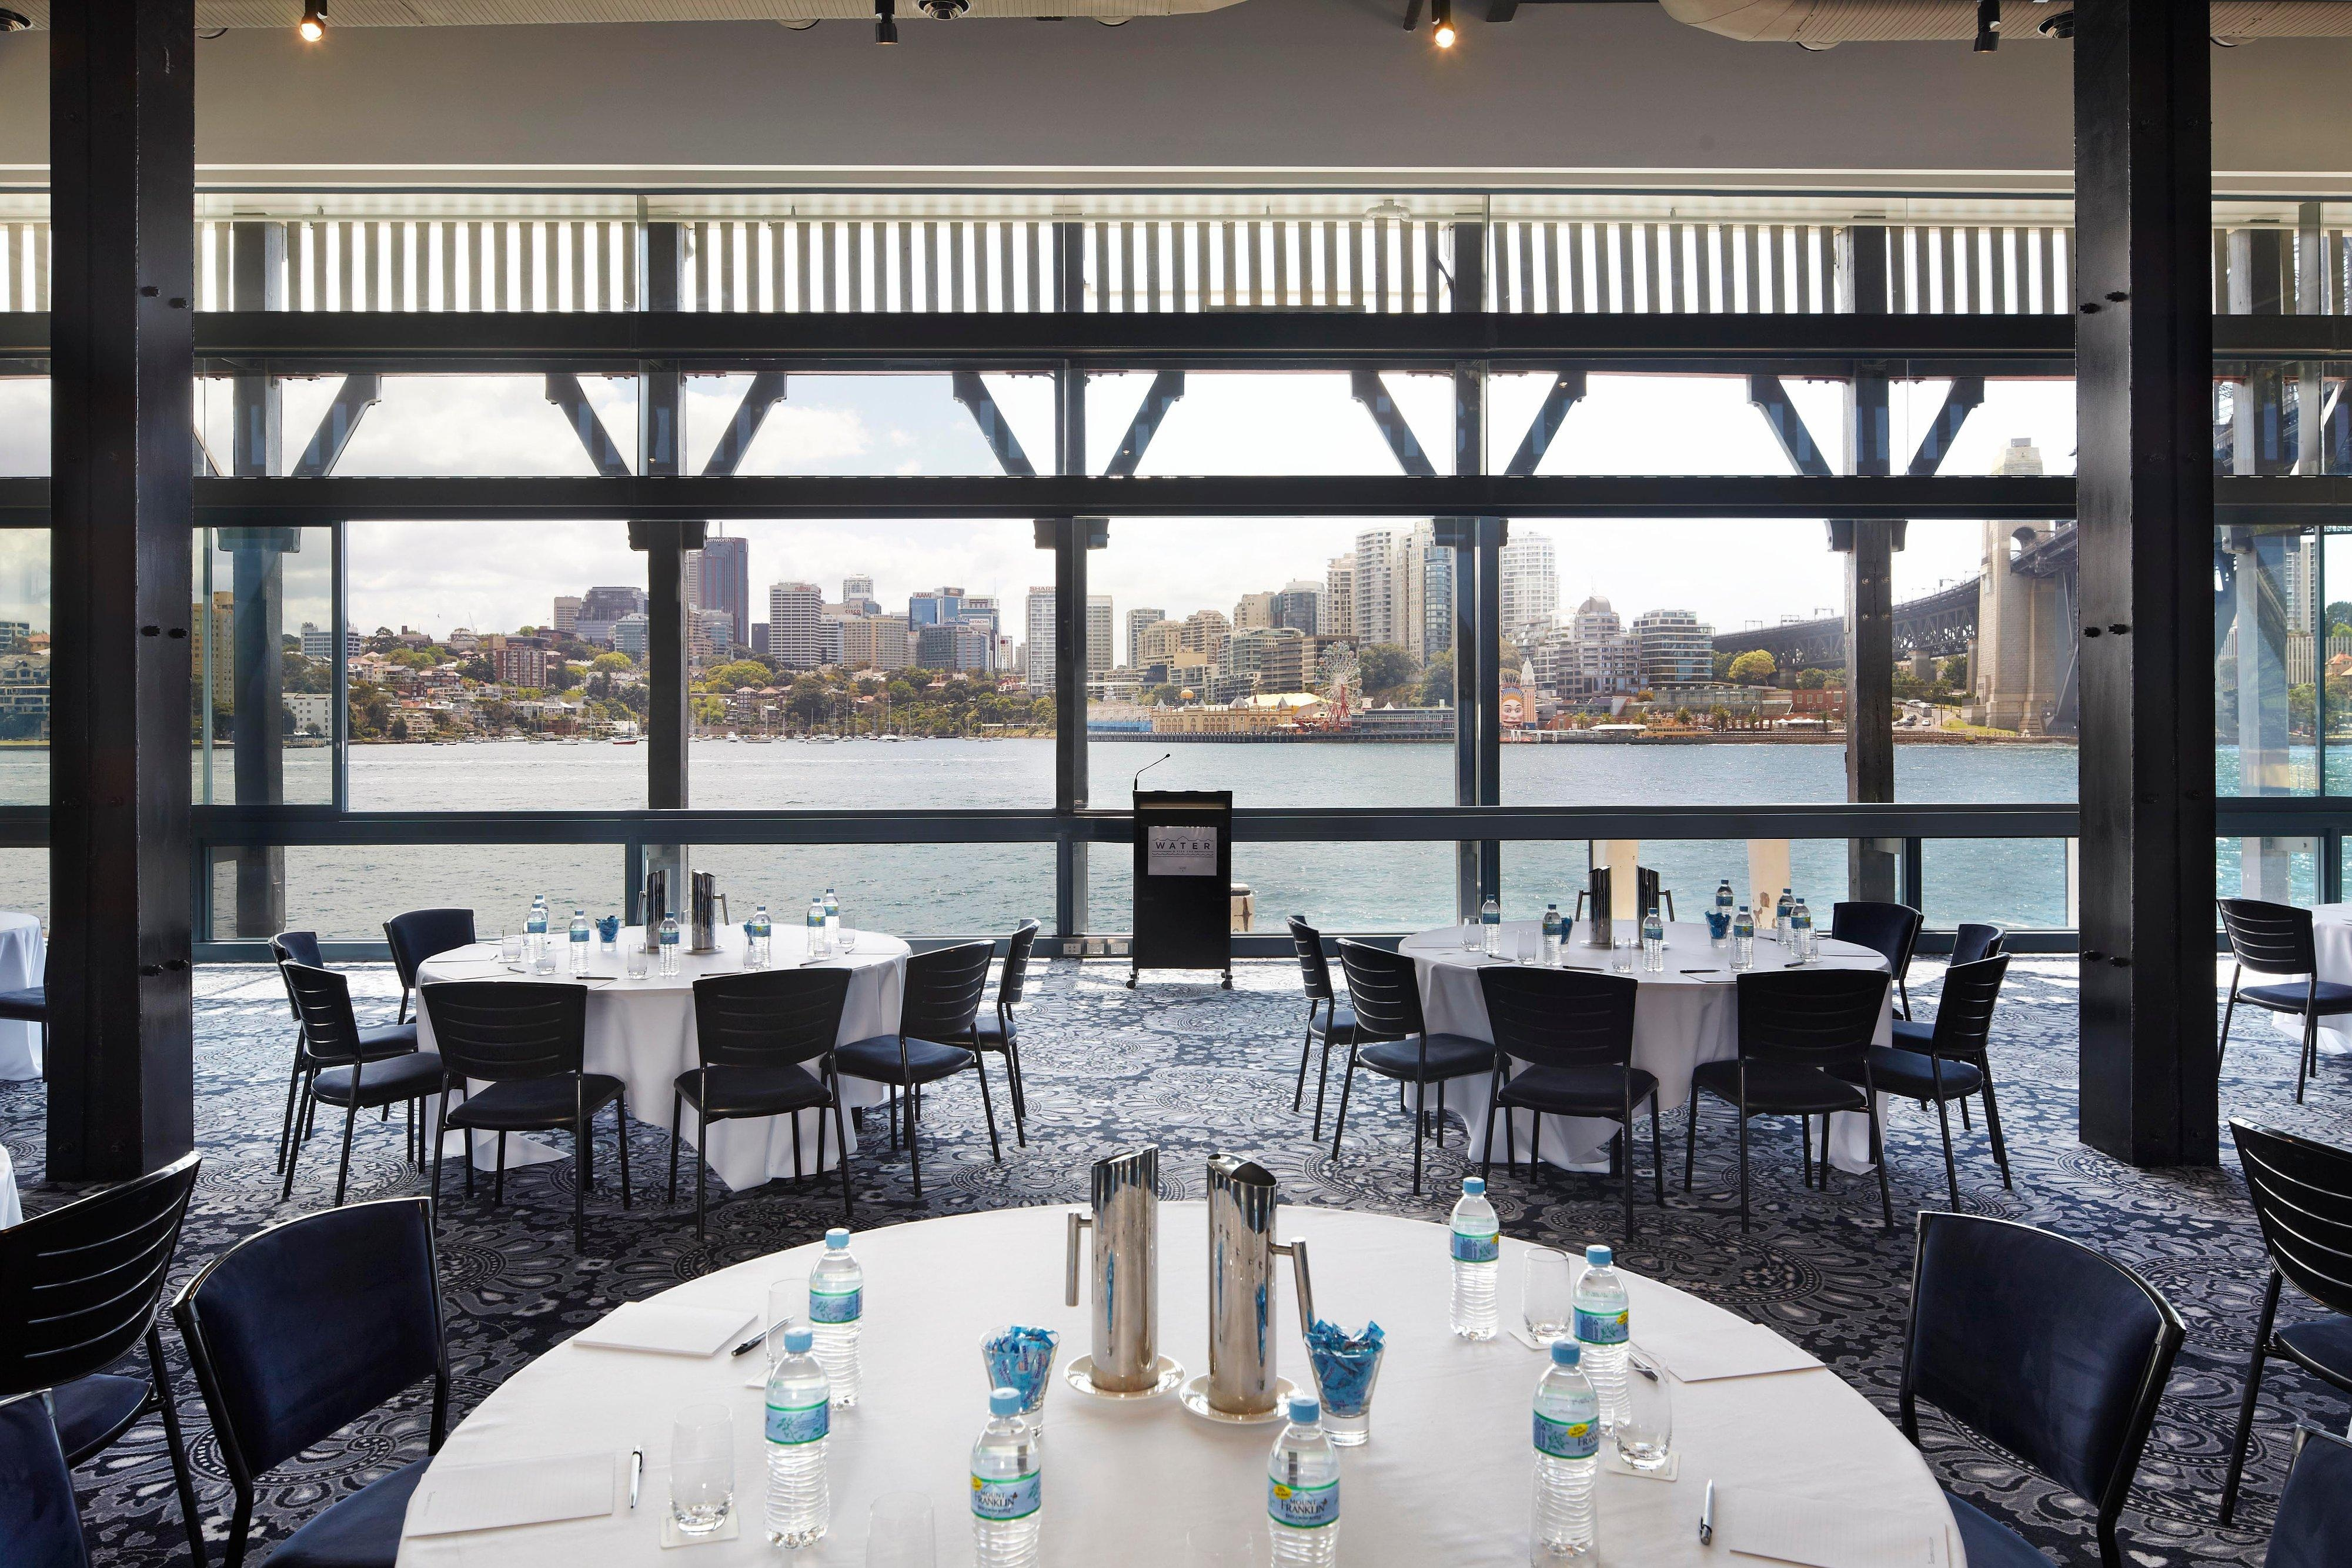 Water at Pier One – Corporate Event Setup